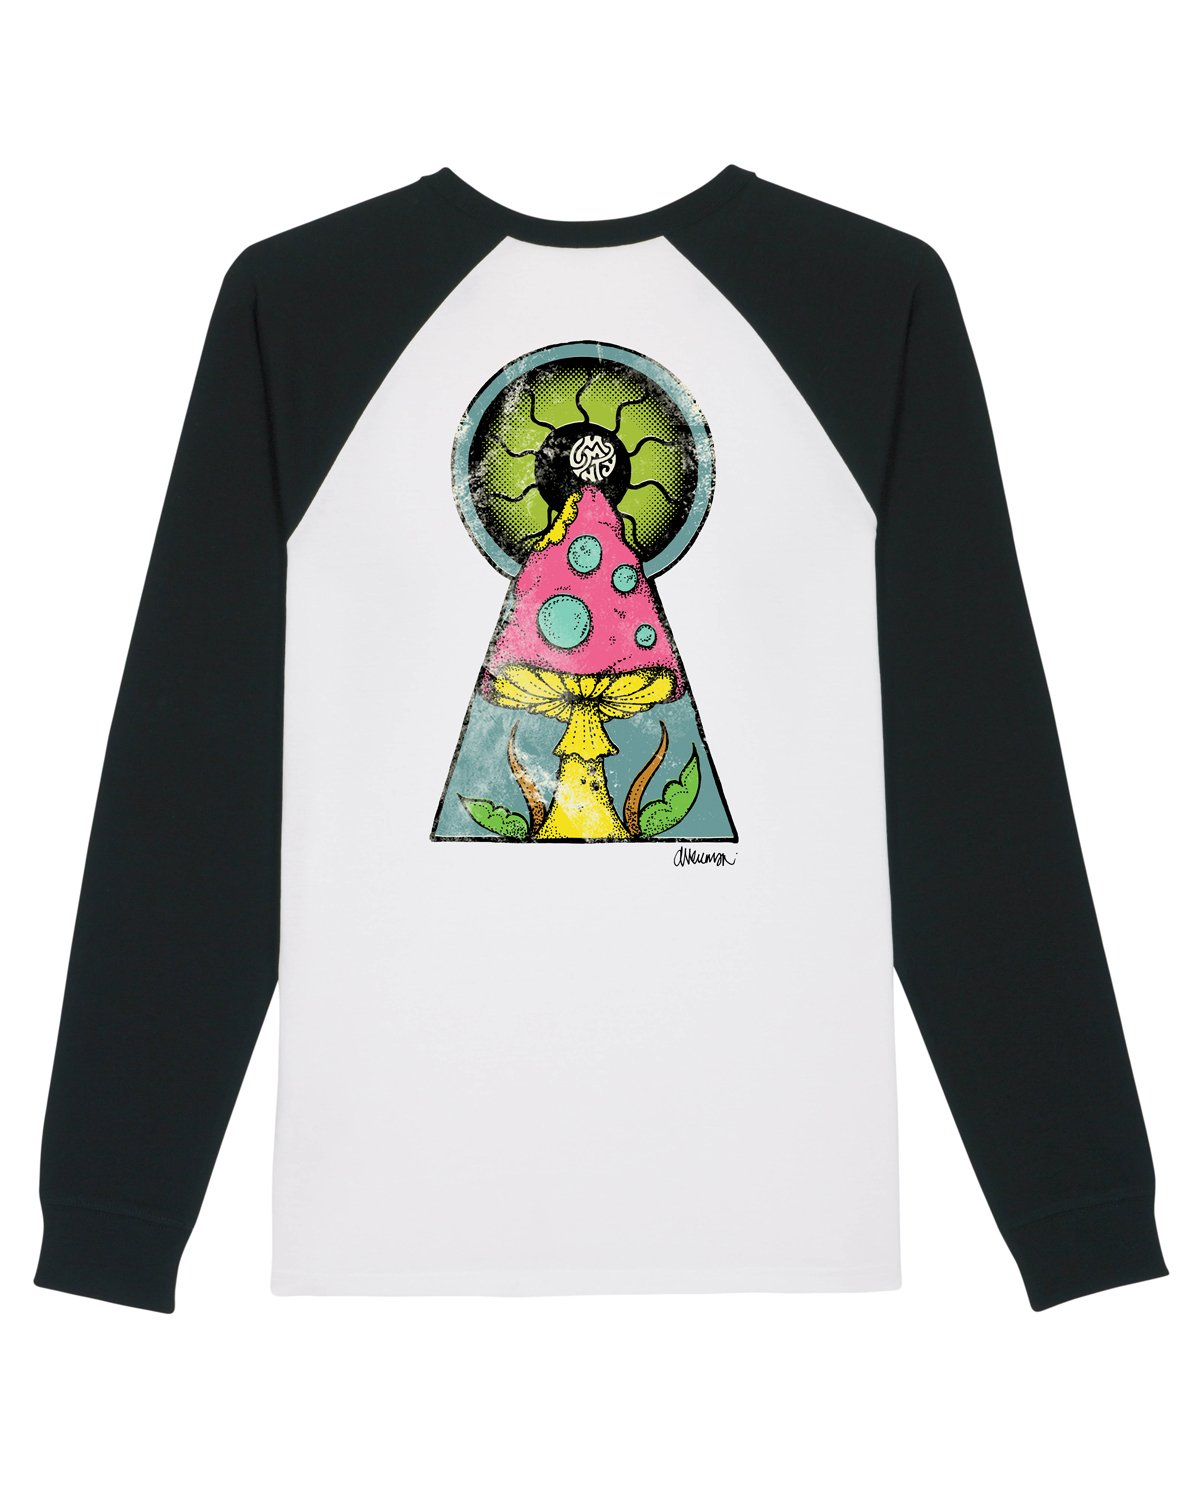 Daren Newman 'Mushroom' Unisex Long Sleeve Baseball T-Shirt